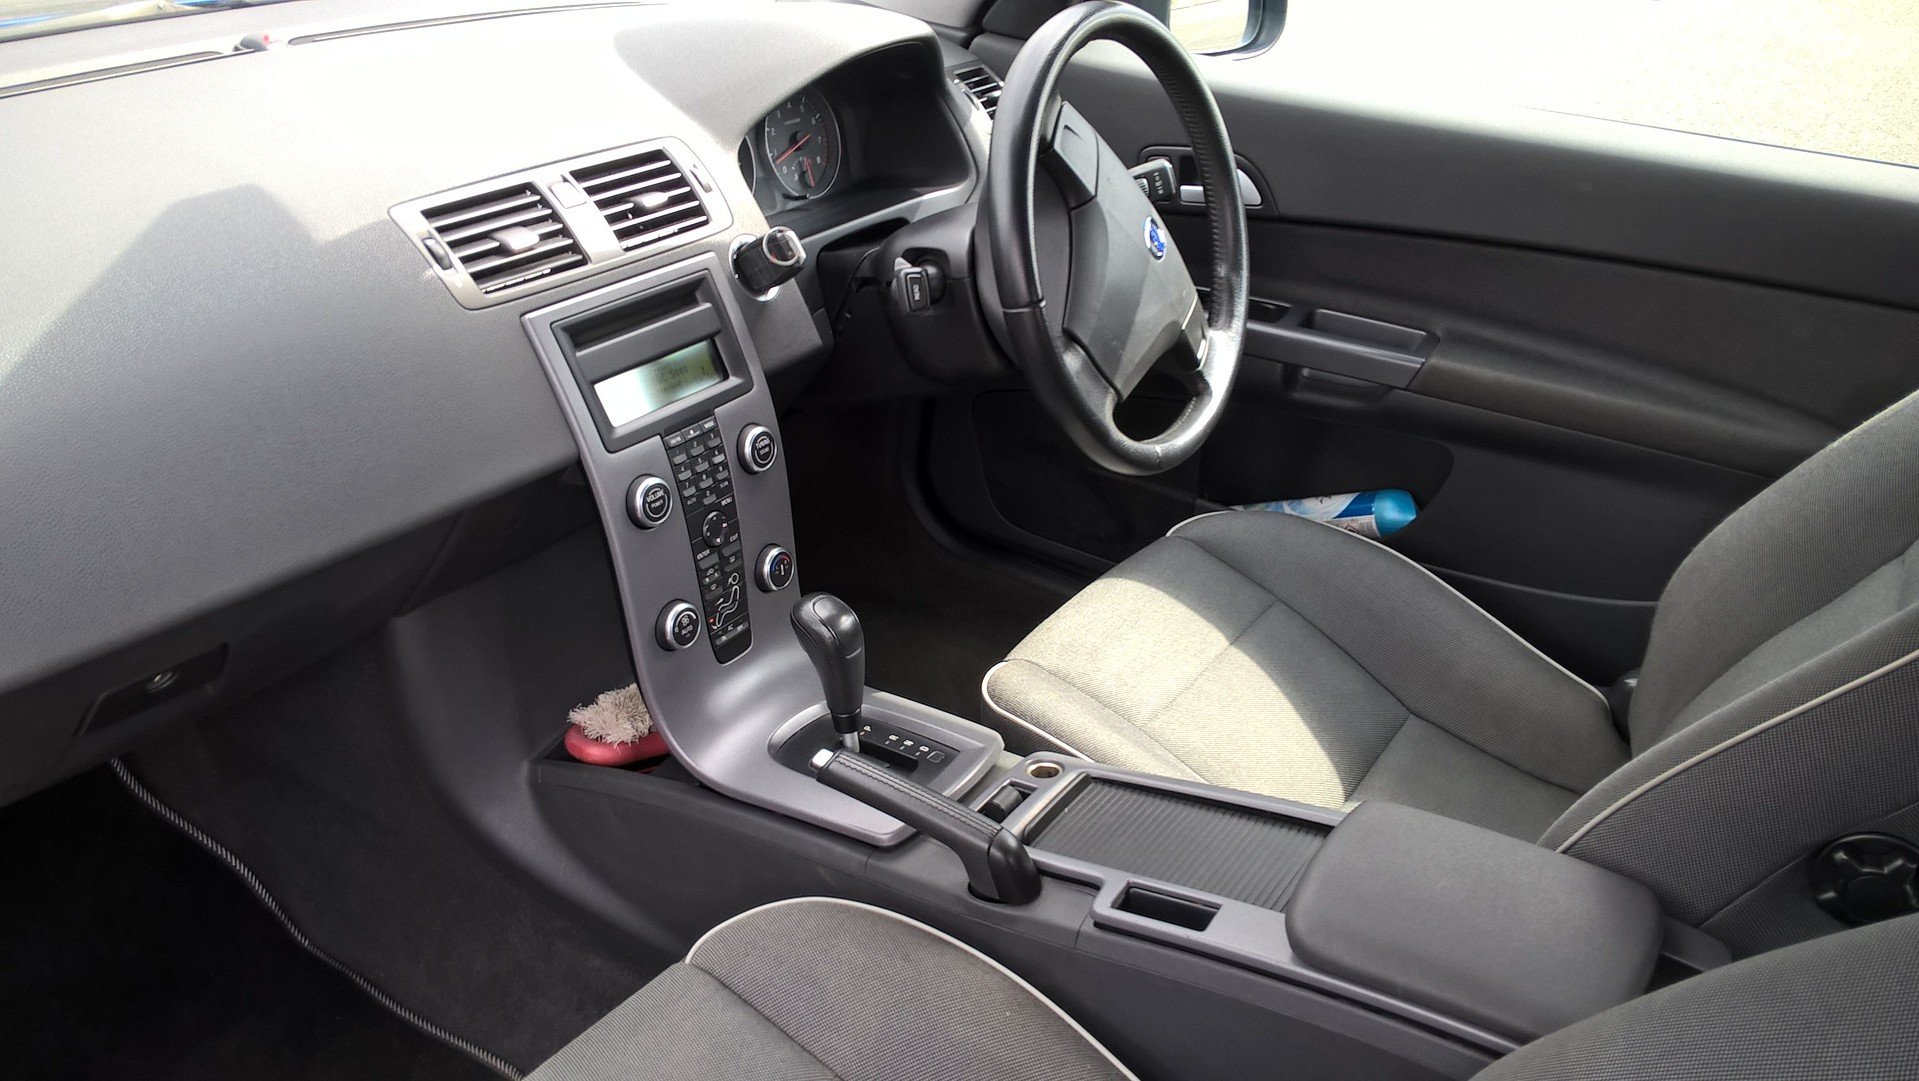 2007 volvo c30 s 2.4 automatic For Sale (picture 4 of 6)